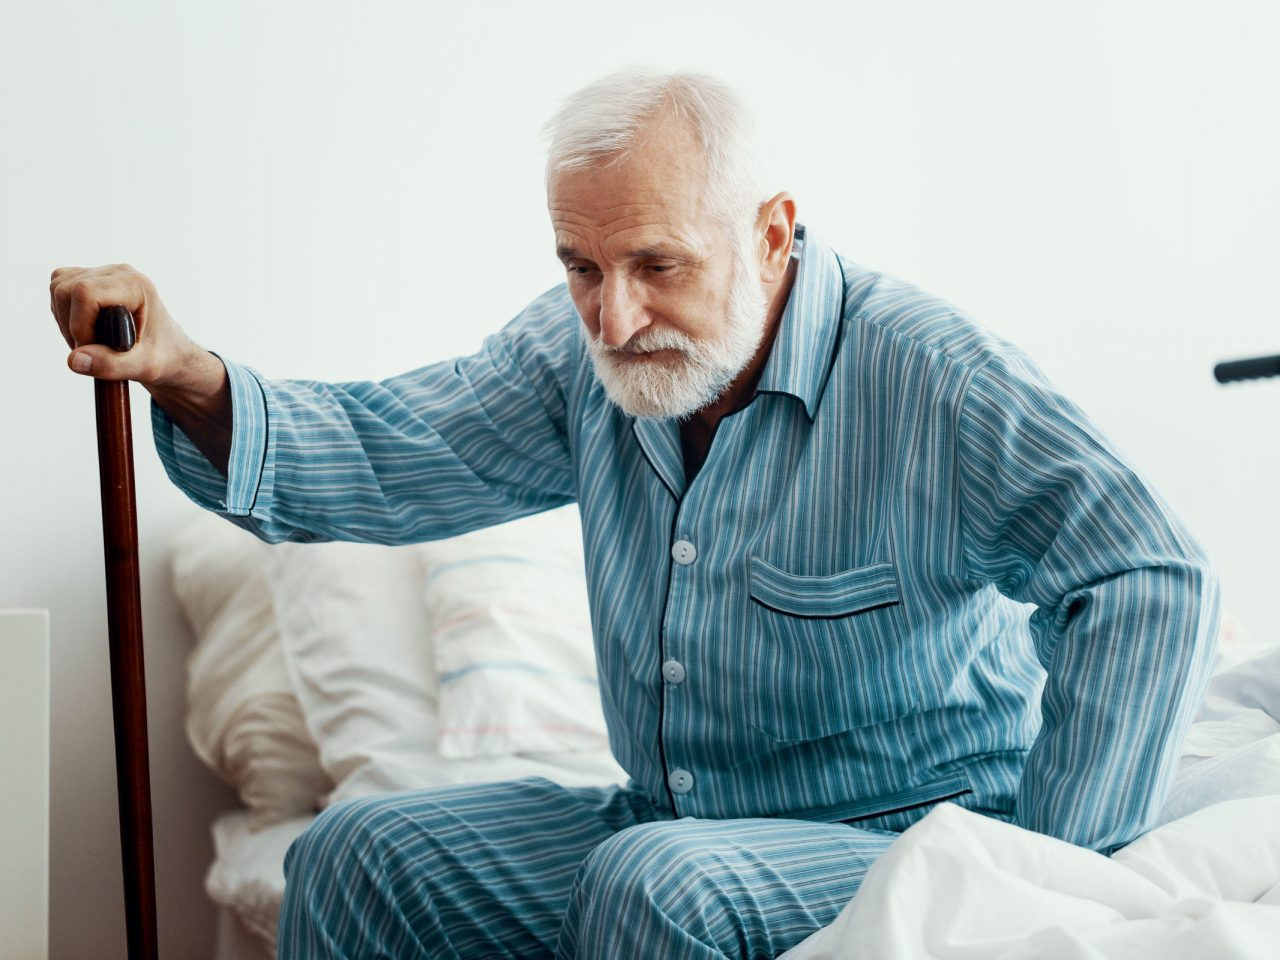 home visit mobile physiotherapy helping senior male in aged care get out of bed Action Home Rehab